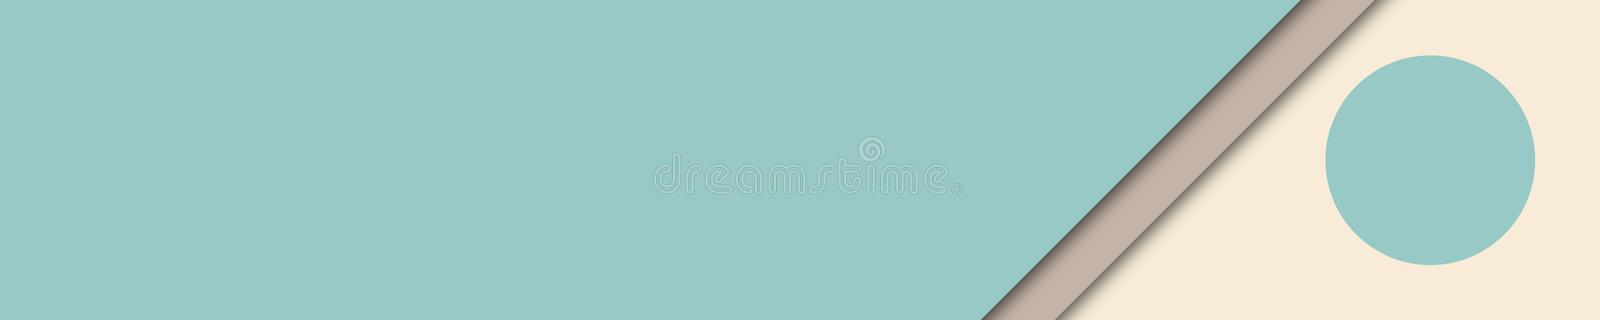 Elegant banner turquoise, brown and beige colors for website royalty free stock image